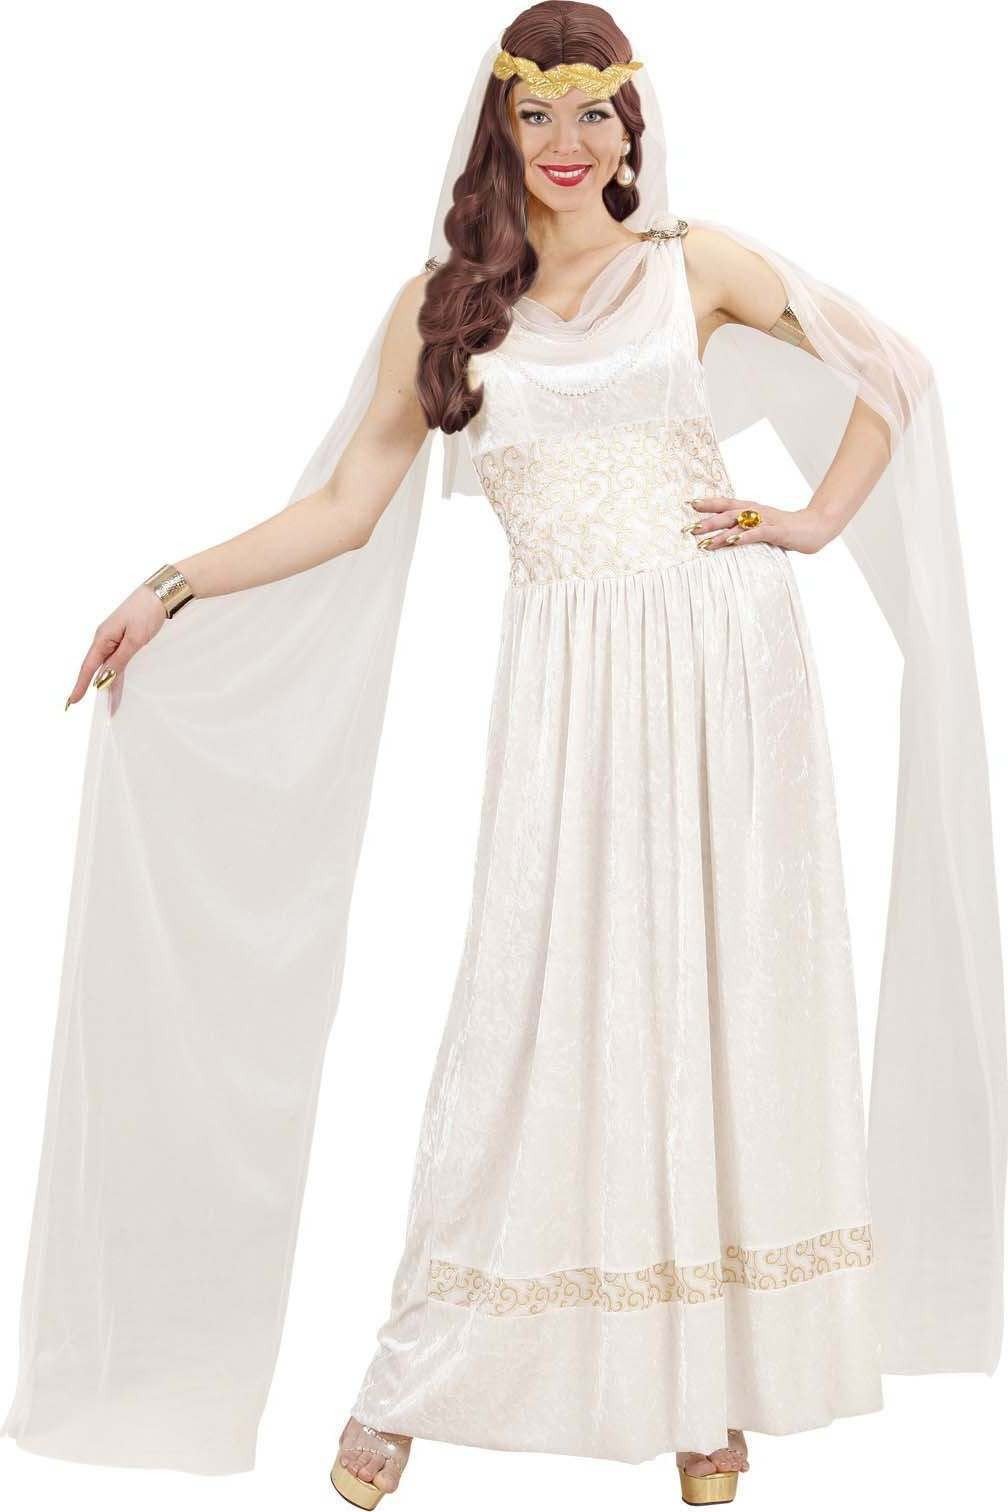 Ladies Roman Empress- (Dress W/Viels Laurel Crown) Roman - (White)